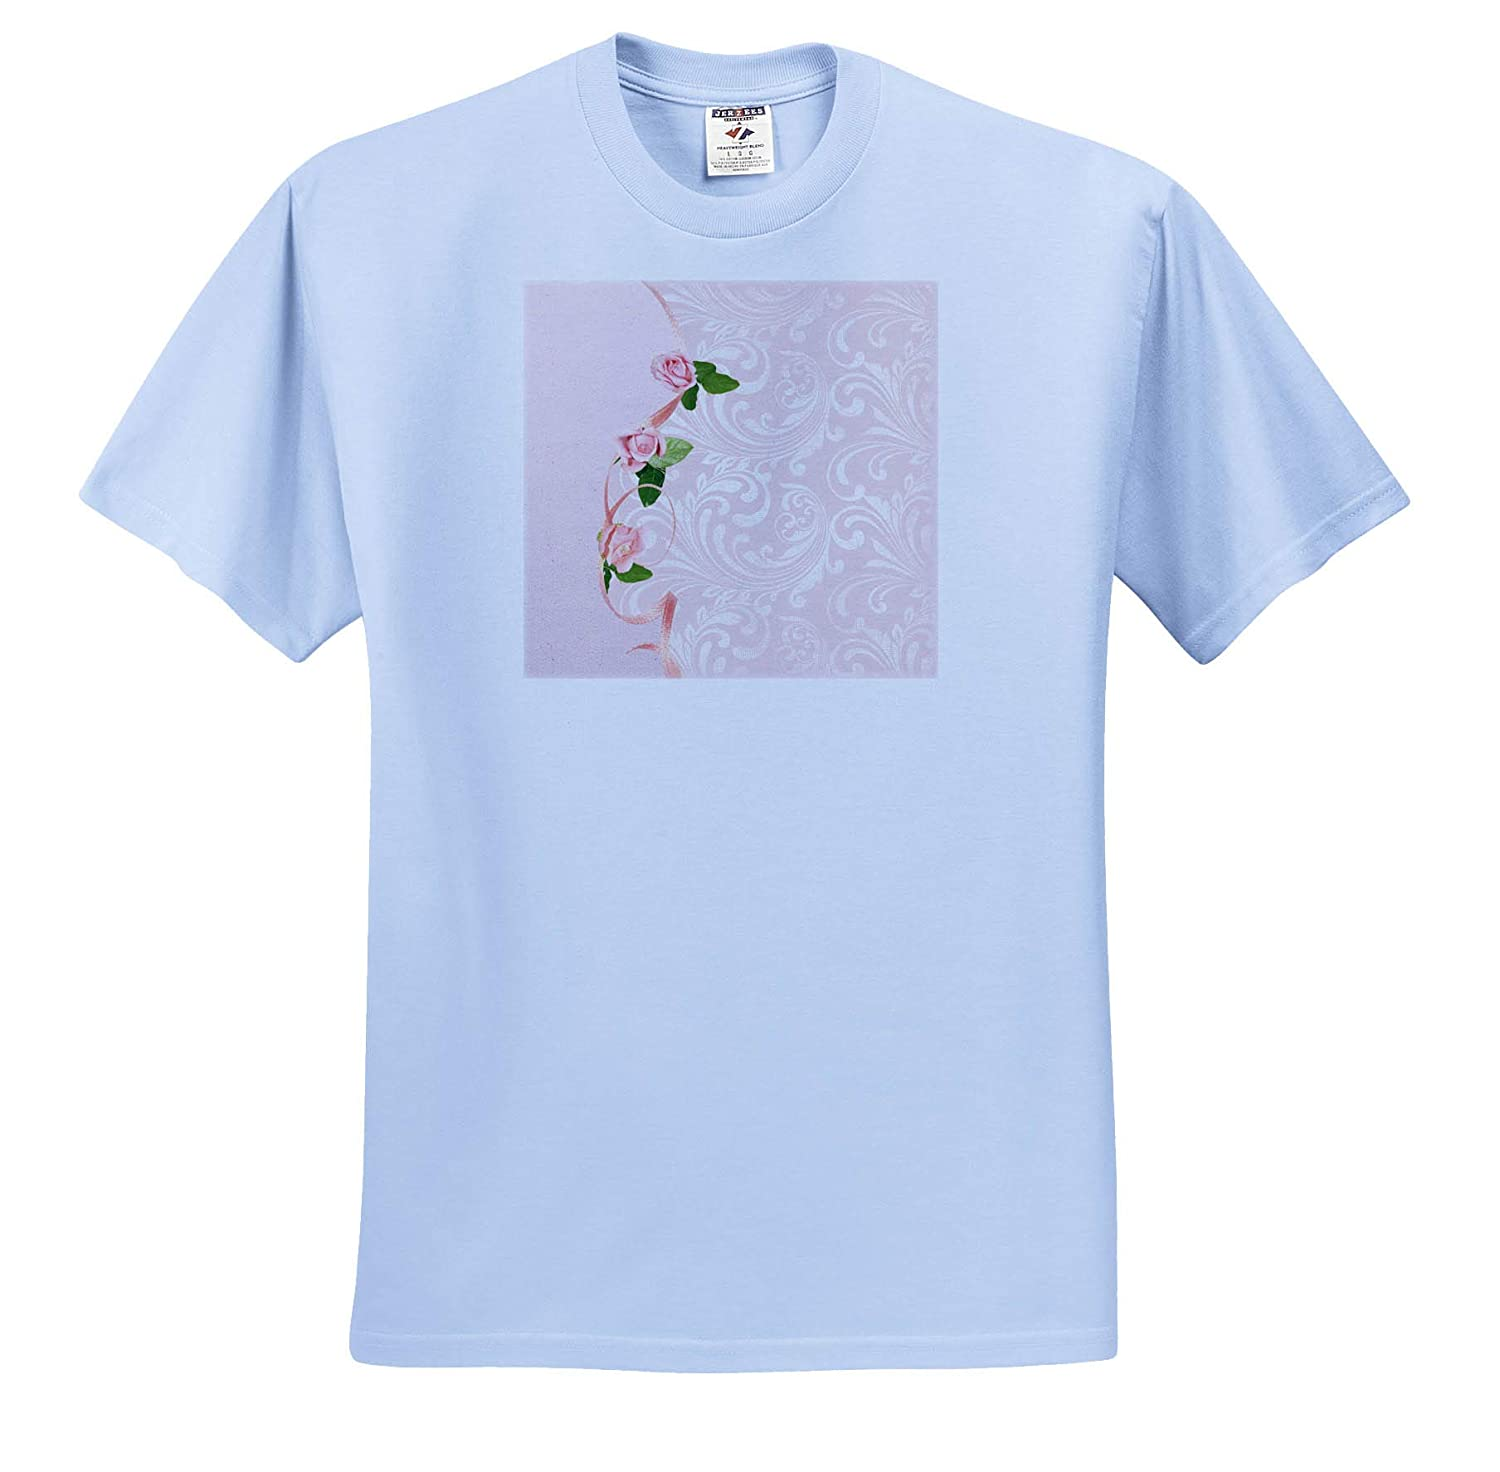 ts/_313362 Adult T-Shirt XL Image of Pink Roses on Ribbon on Elegant Design 3dRose Beverly Turner Flora Design